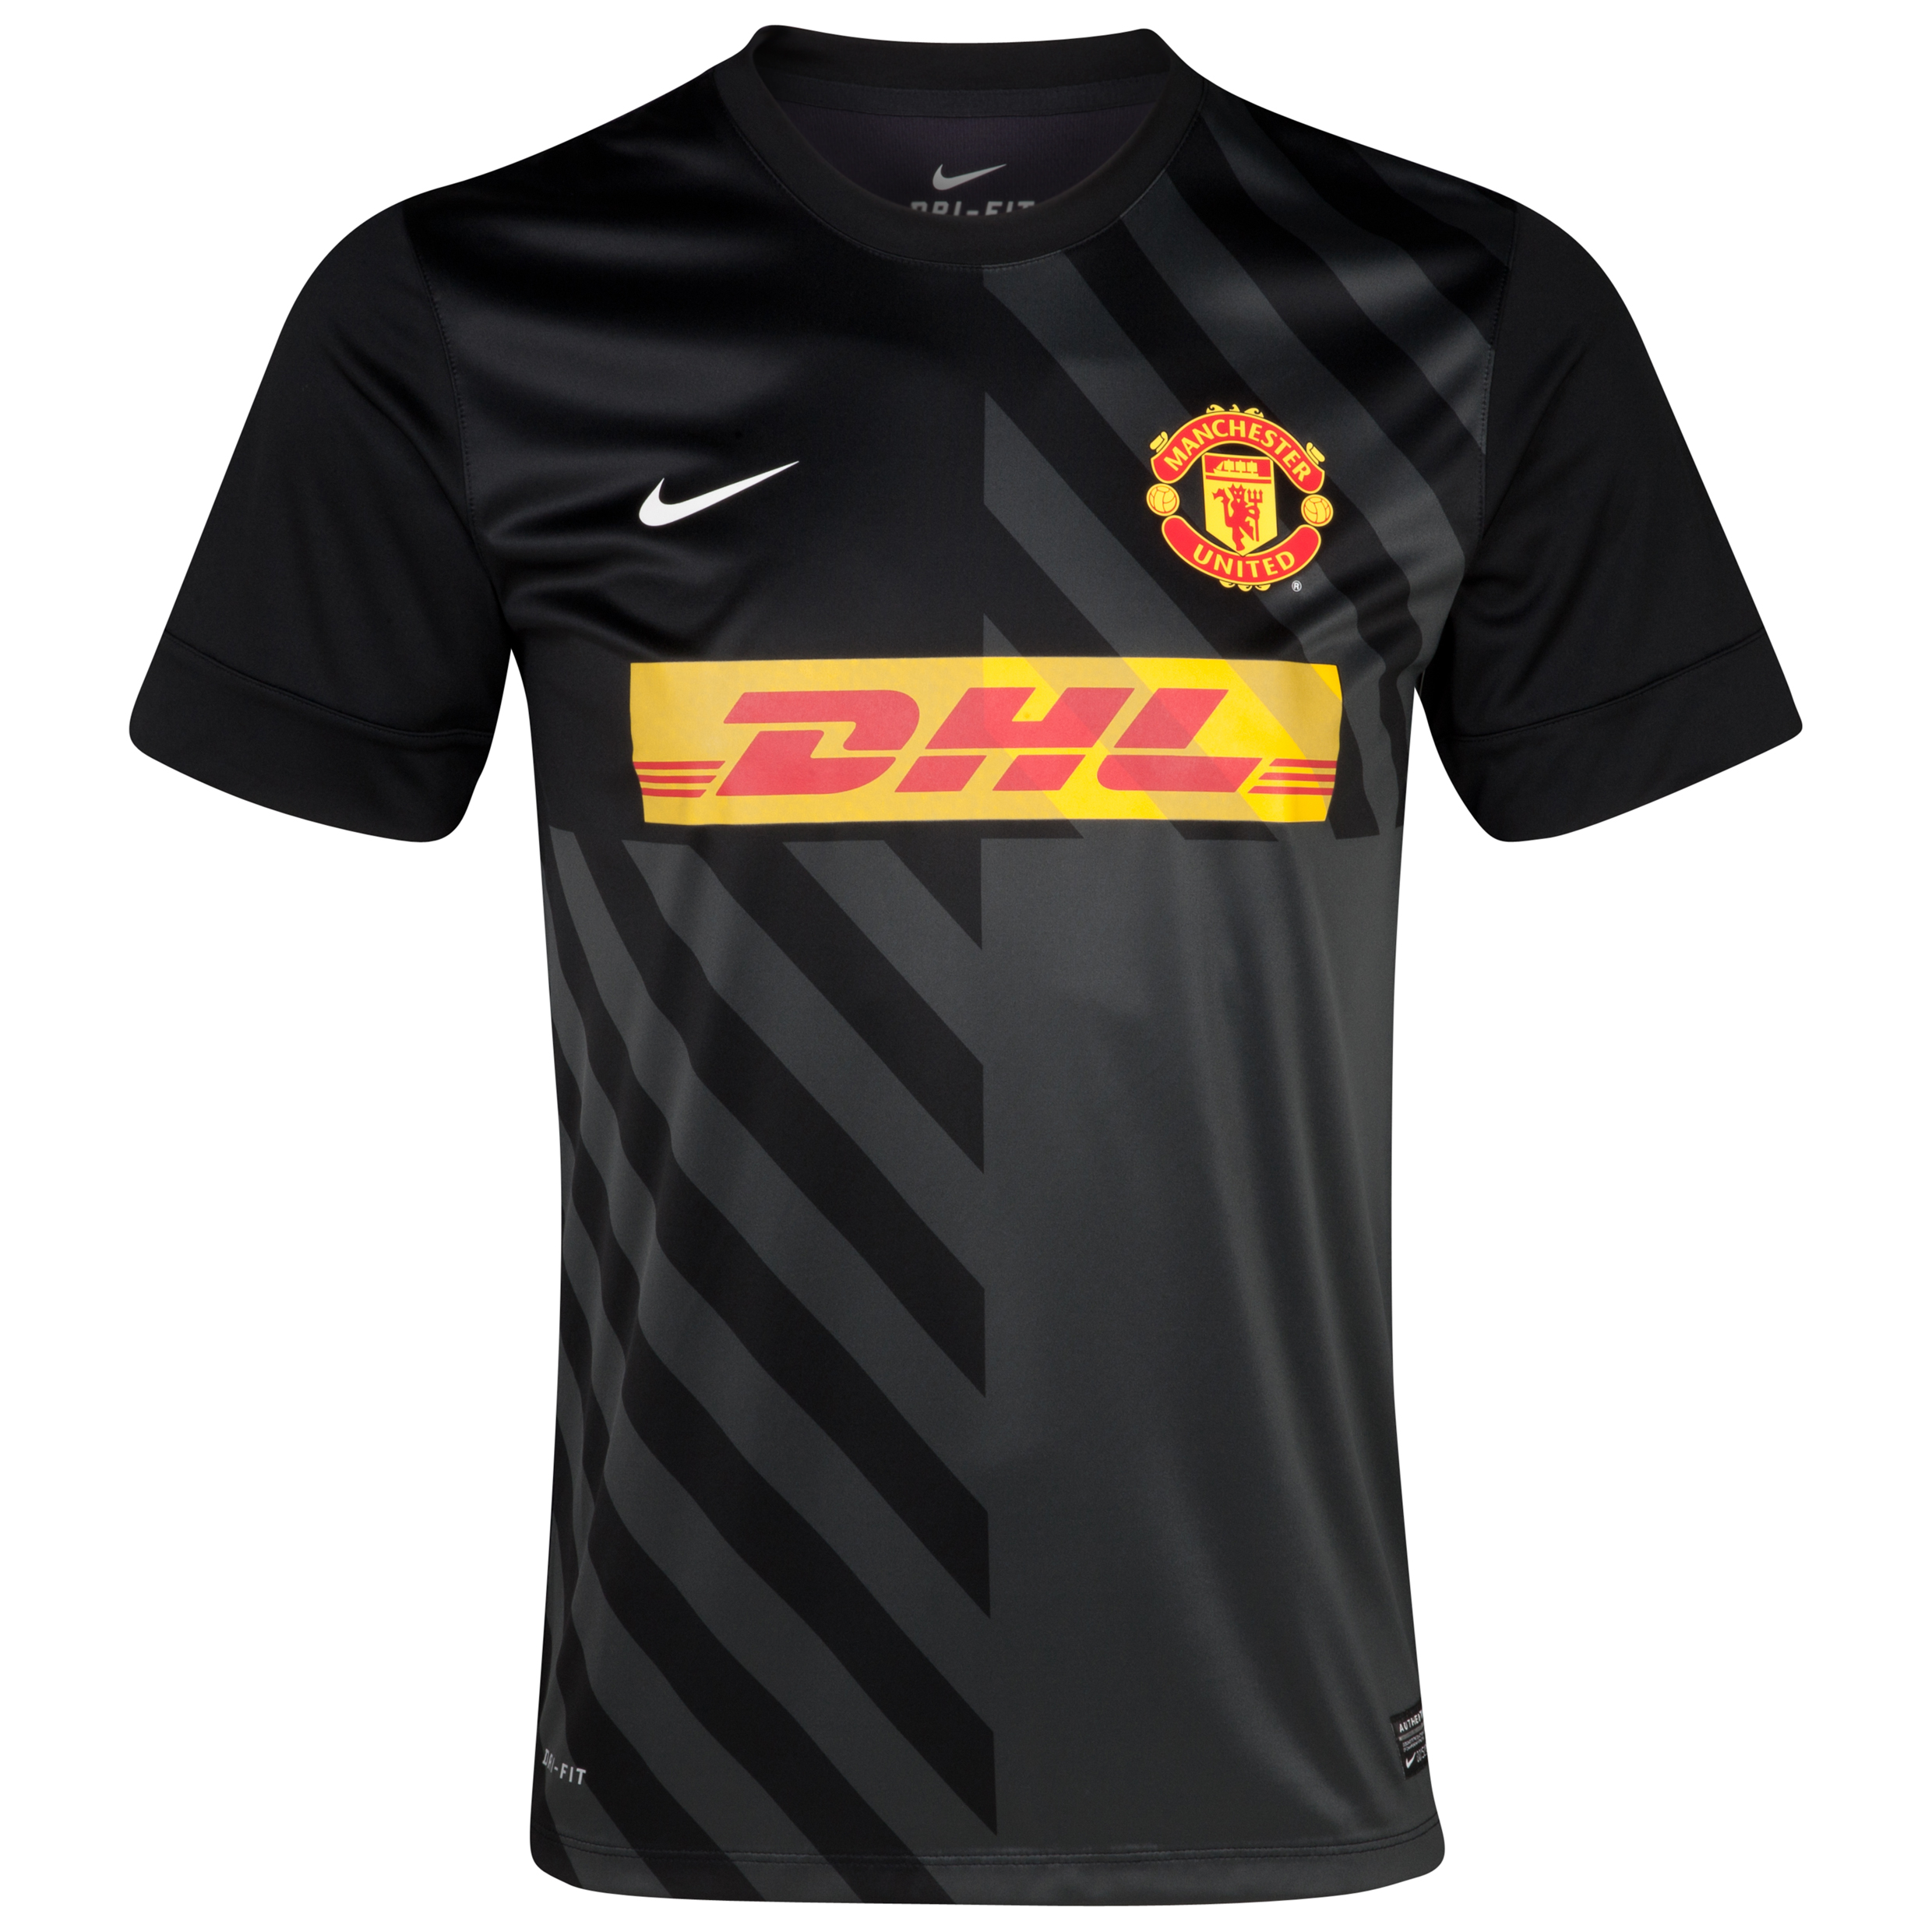 Manchester United Short Sleeve Pre Match Top 1 - Black/Anthracite/White